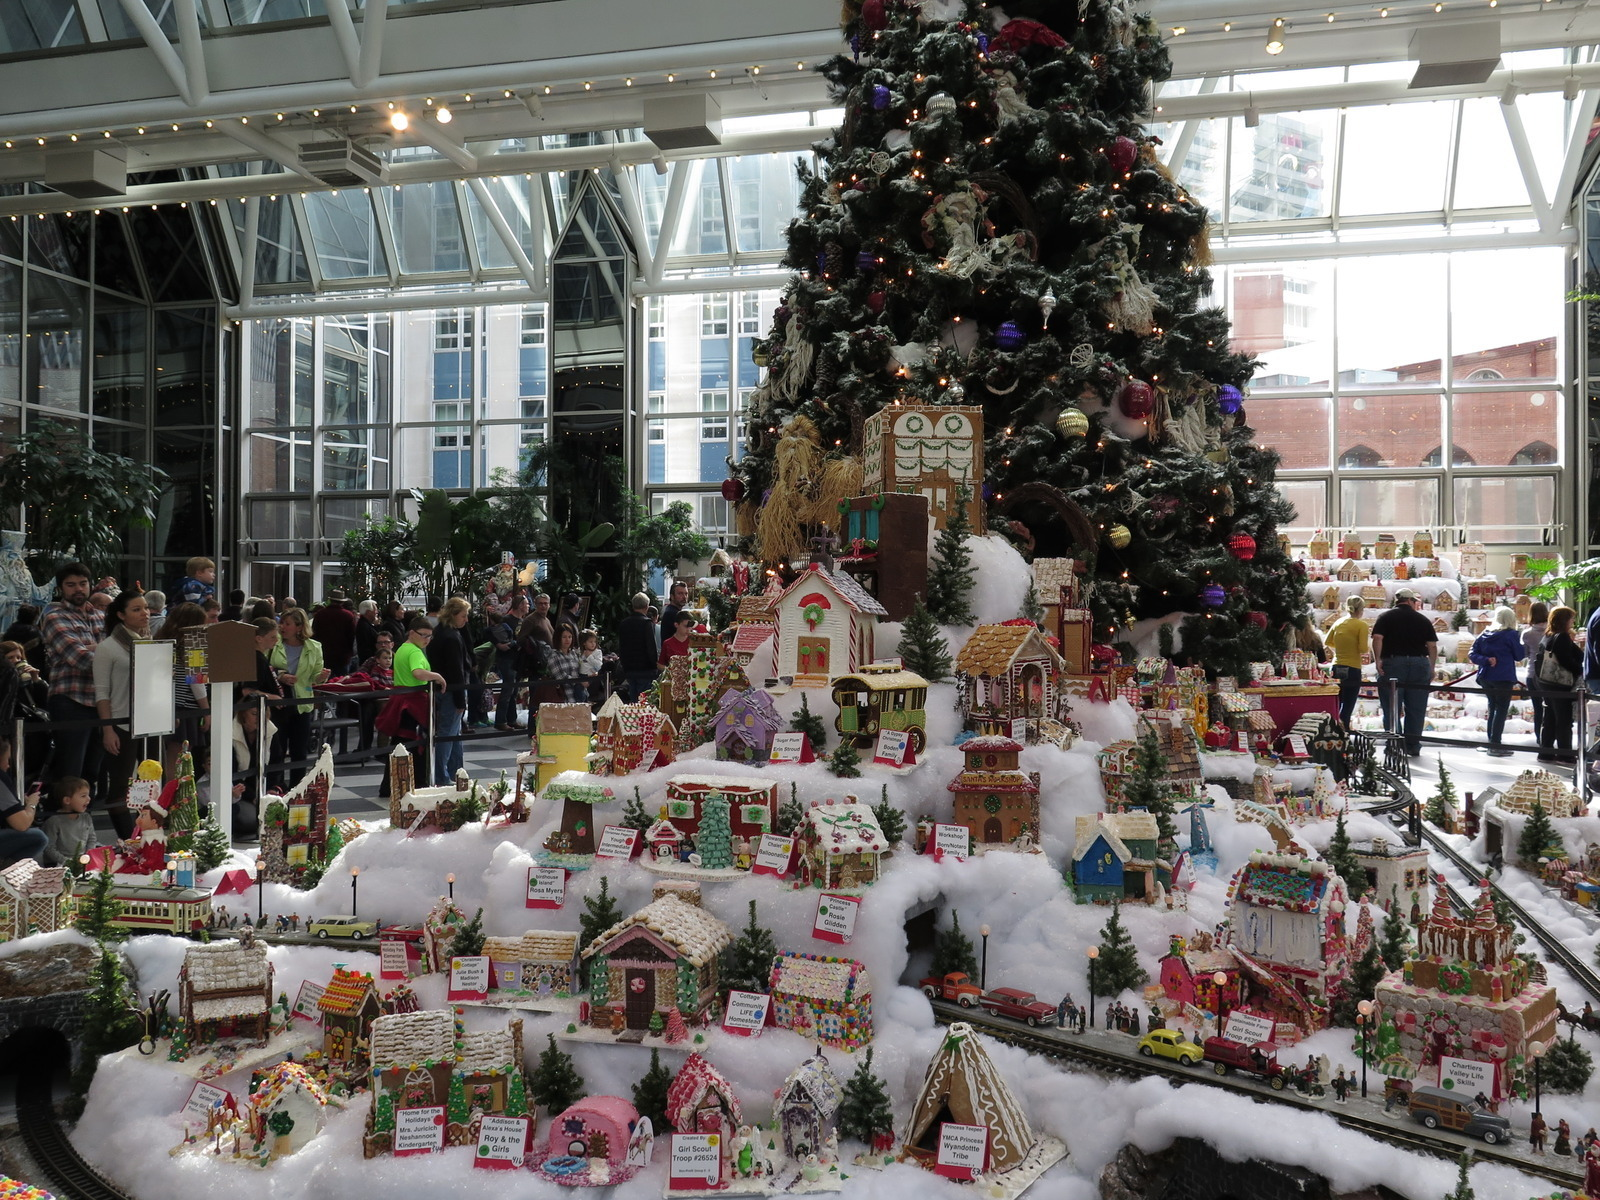 ppg place wintergarden in pittsburgh pa parent reviews u0026 photos